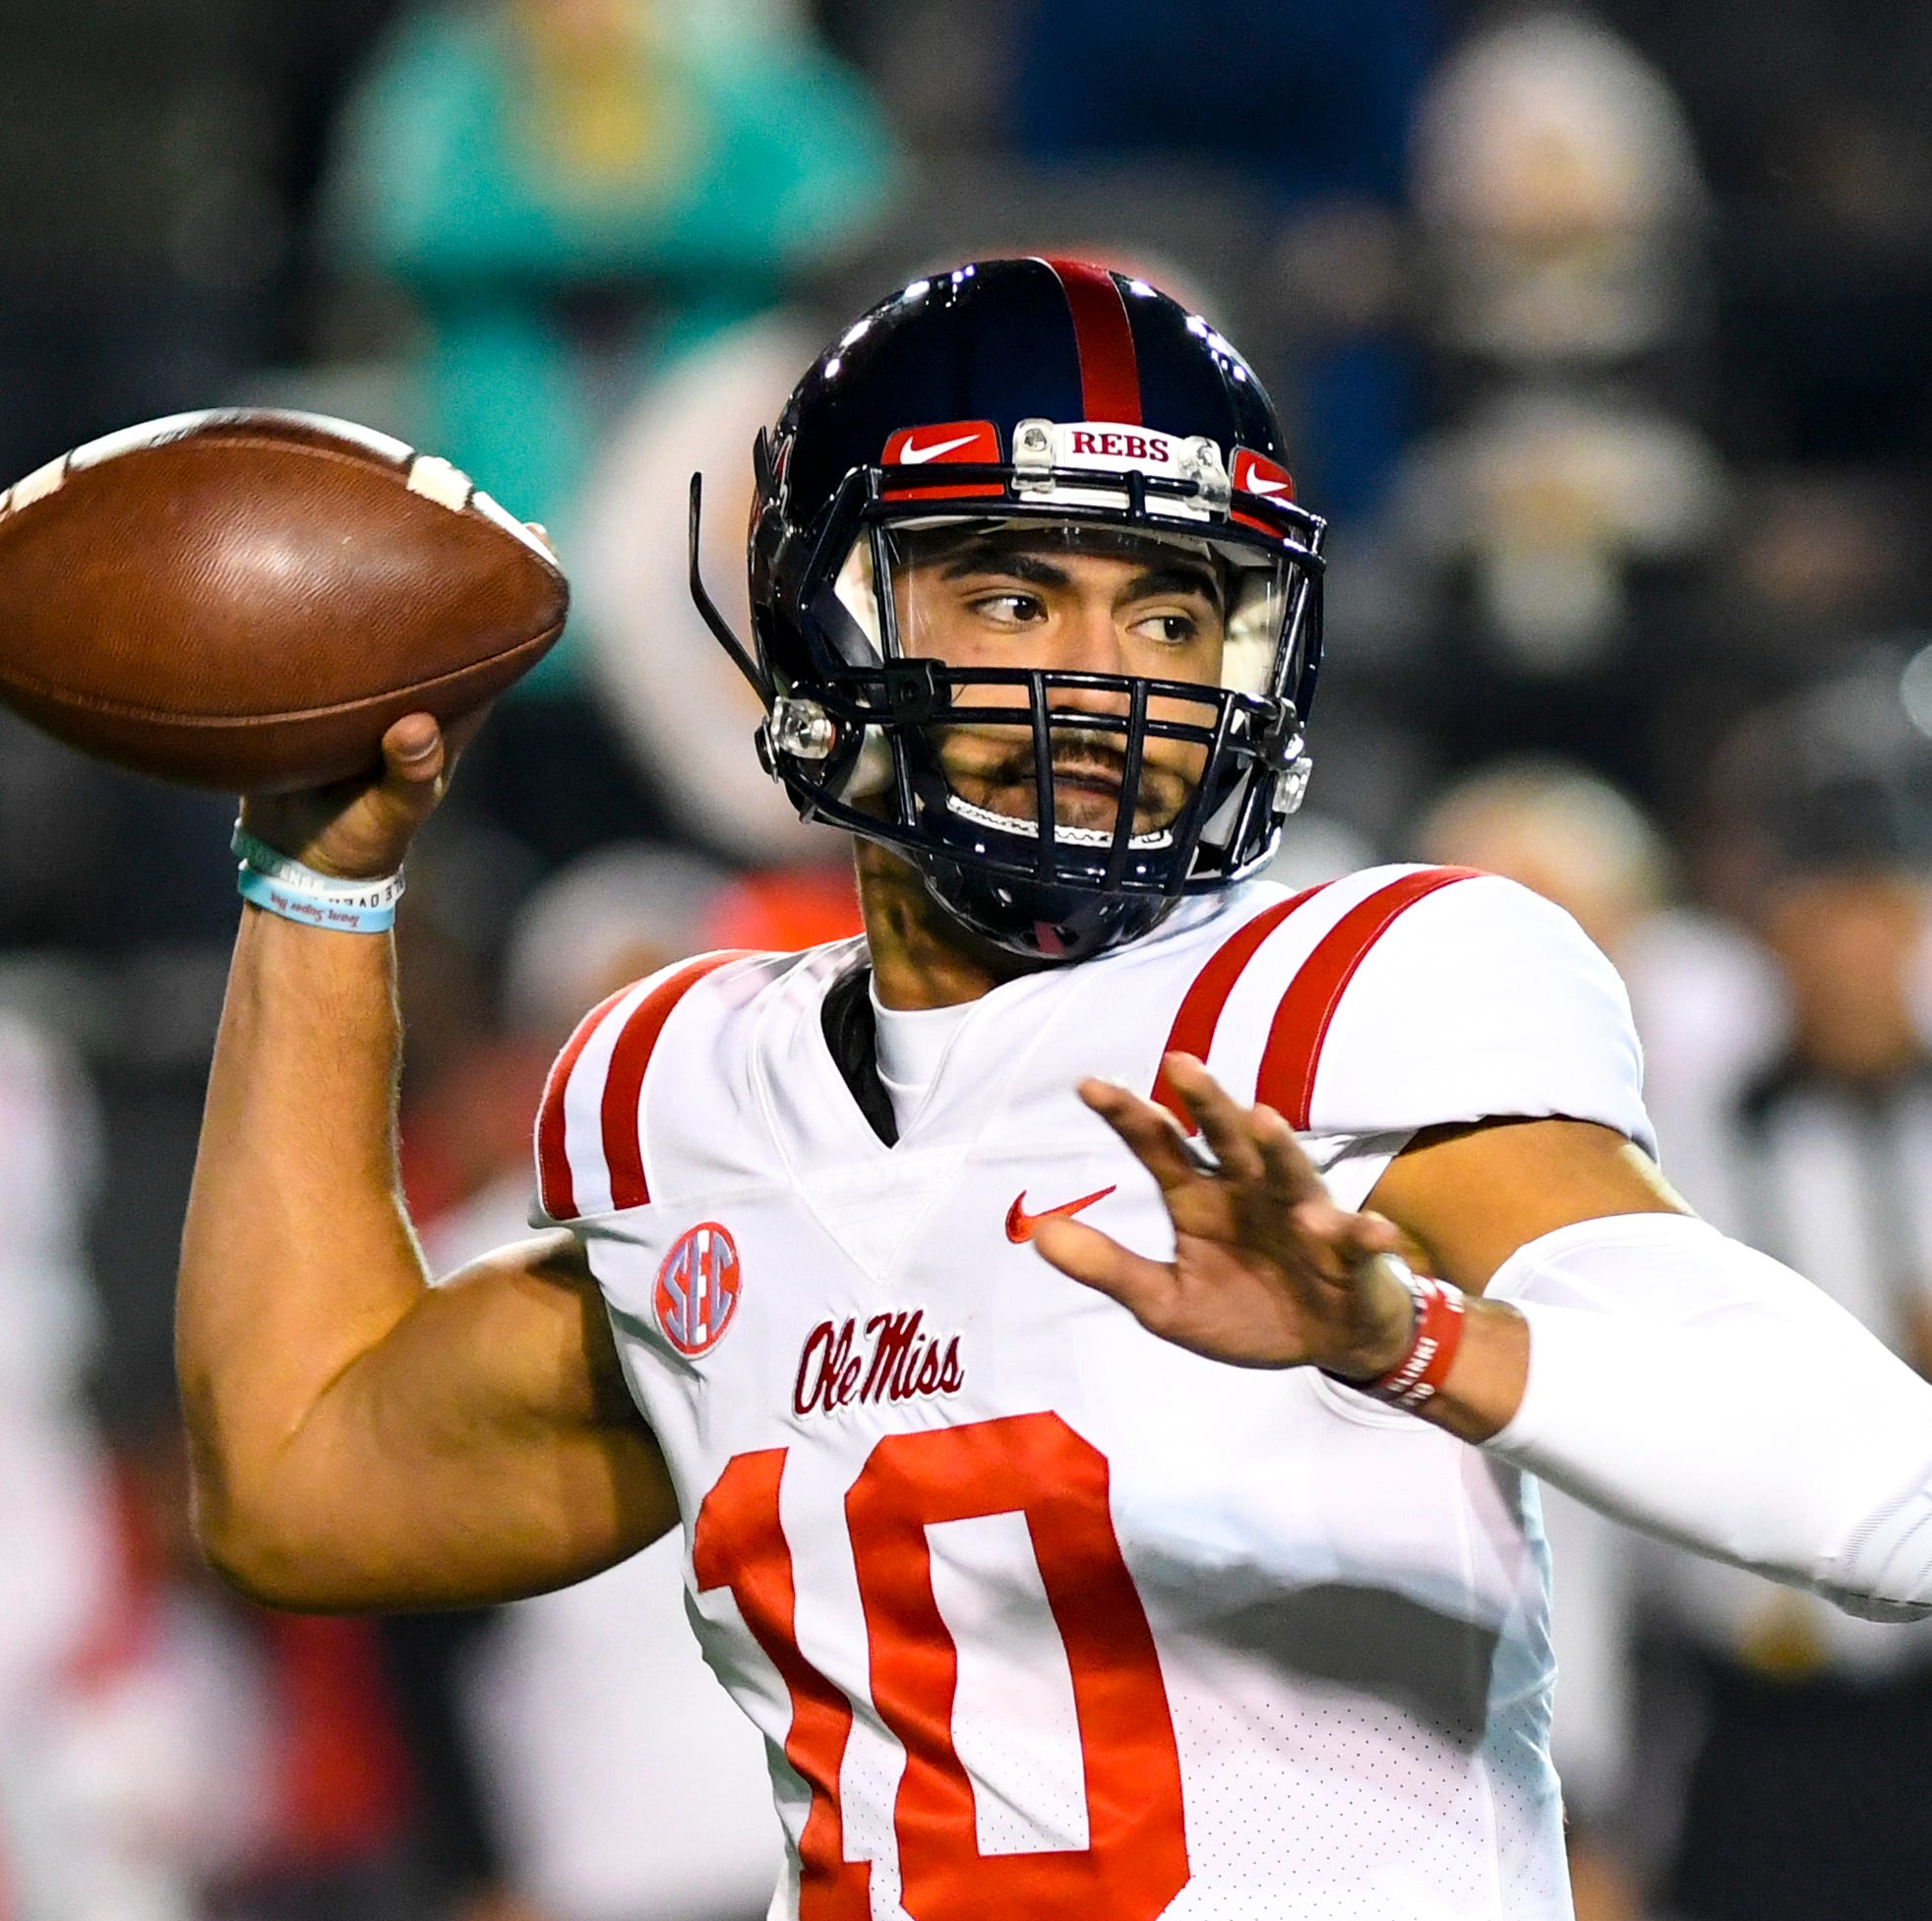 Ole Miss quarterback Jordan Ta'amu (10) passes during Vanderbilt's game against Ole Miss at Vanderbilt Stadium in Nashville on Saturday, Nov. 17, 2018.